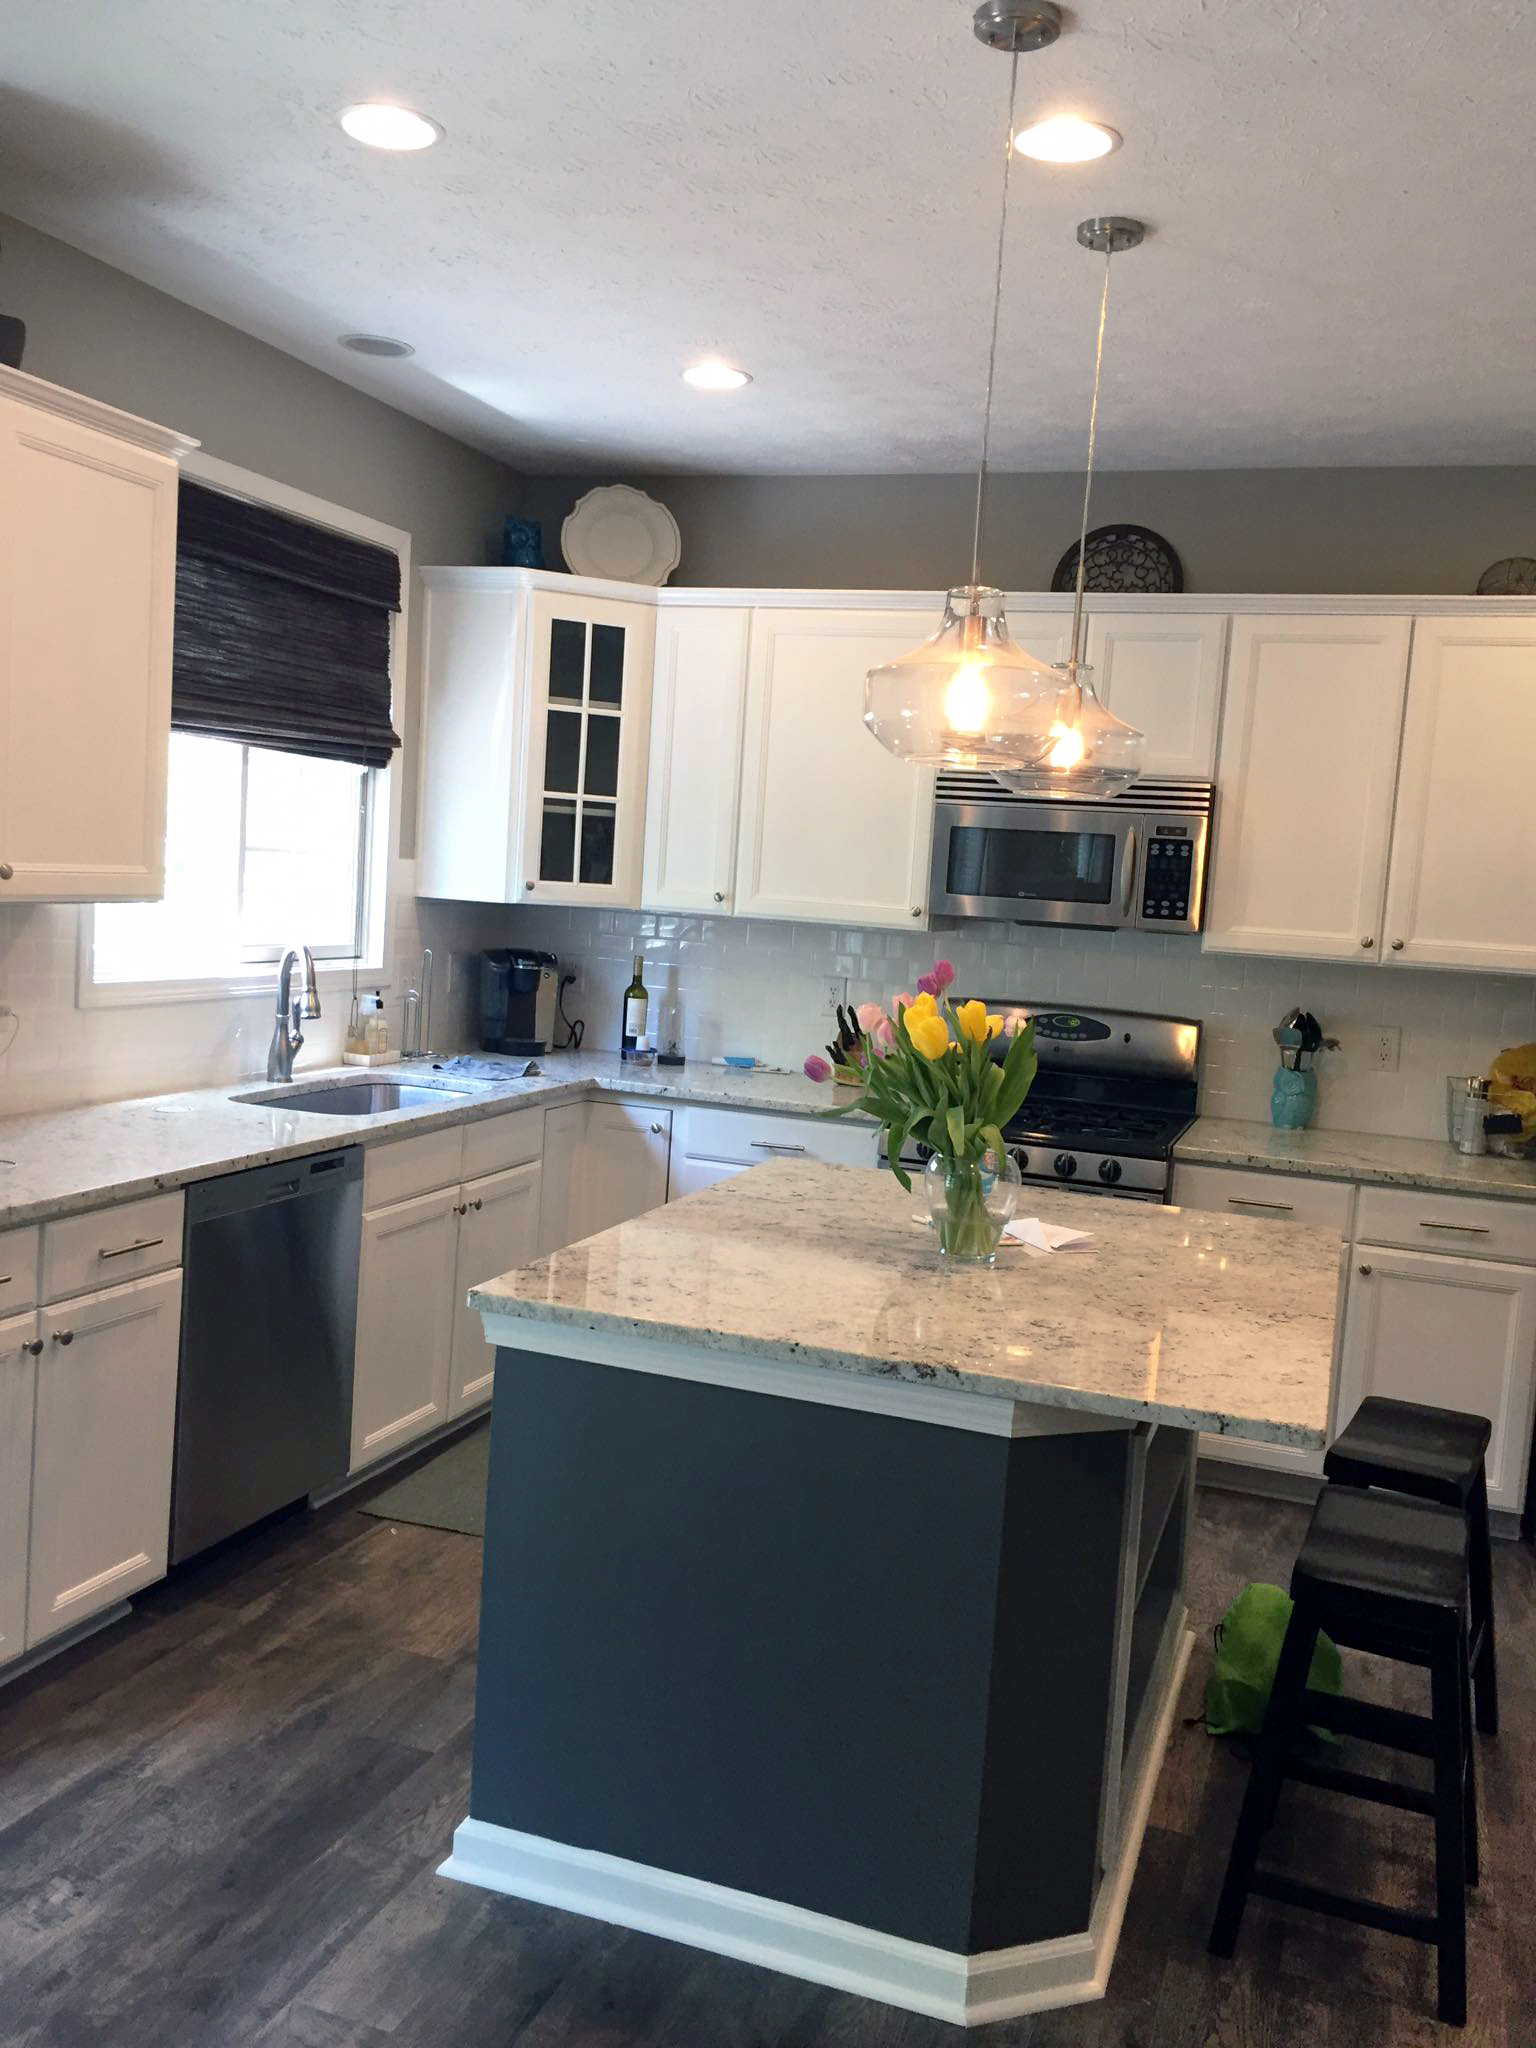 Snow white and driftwood kitchen makeover general for White milk paint kitchen cabinets